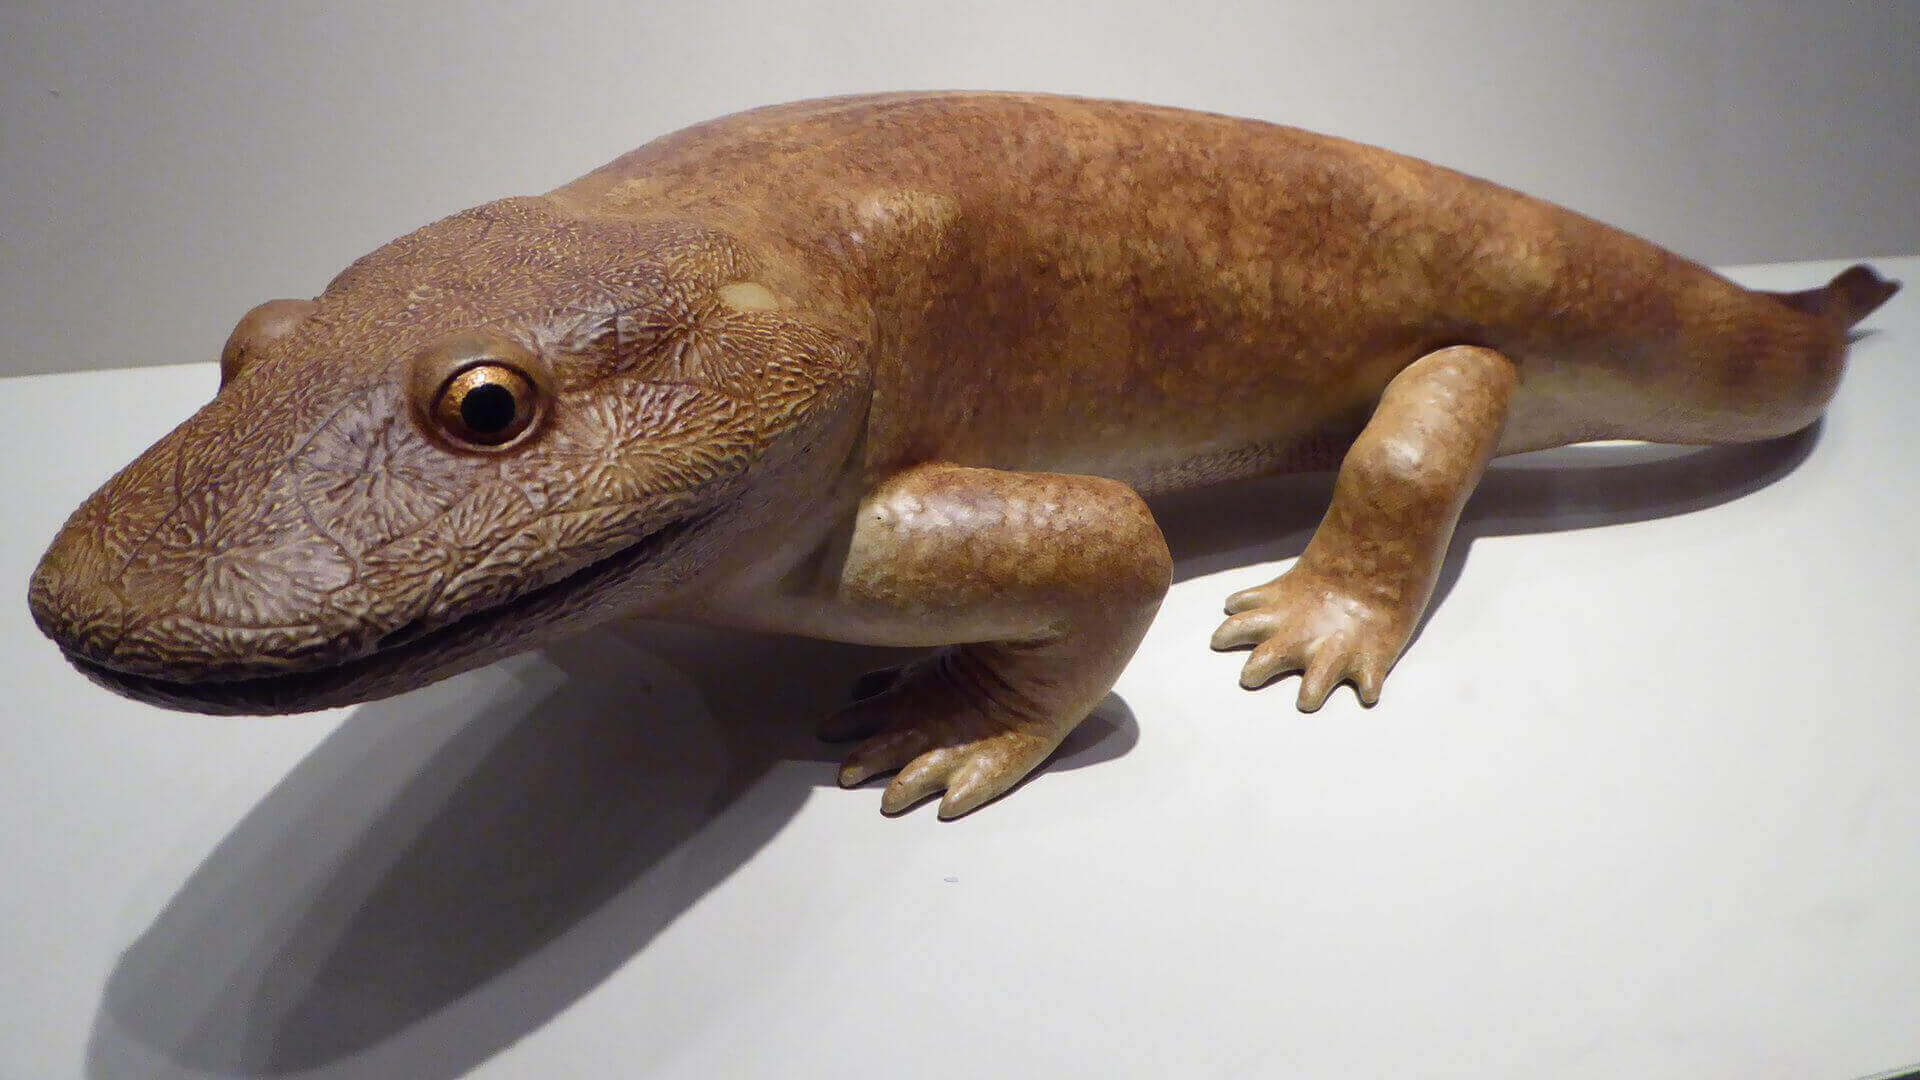 3D Scanning Reveals 350m Year Old Tetrapod Named Tiny   All3DP